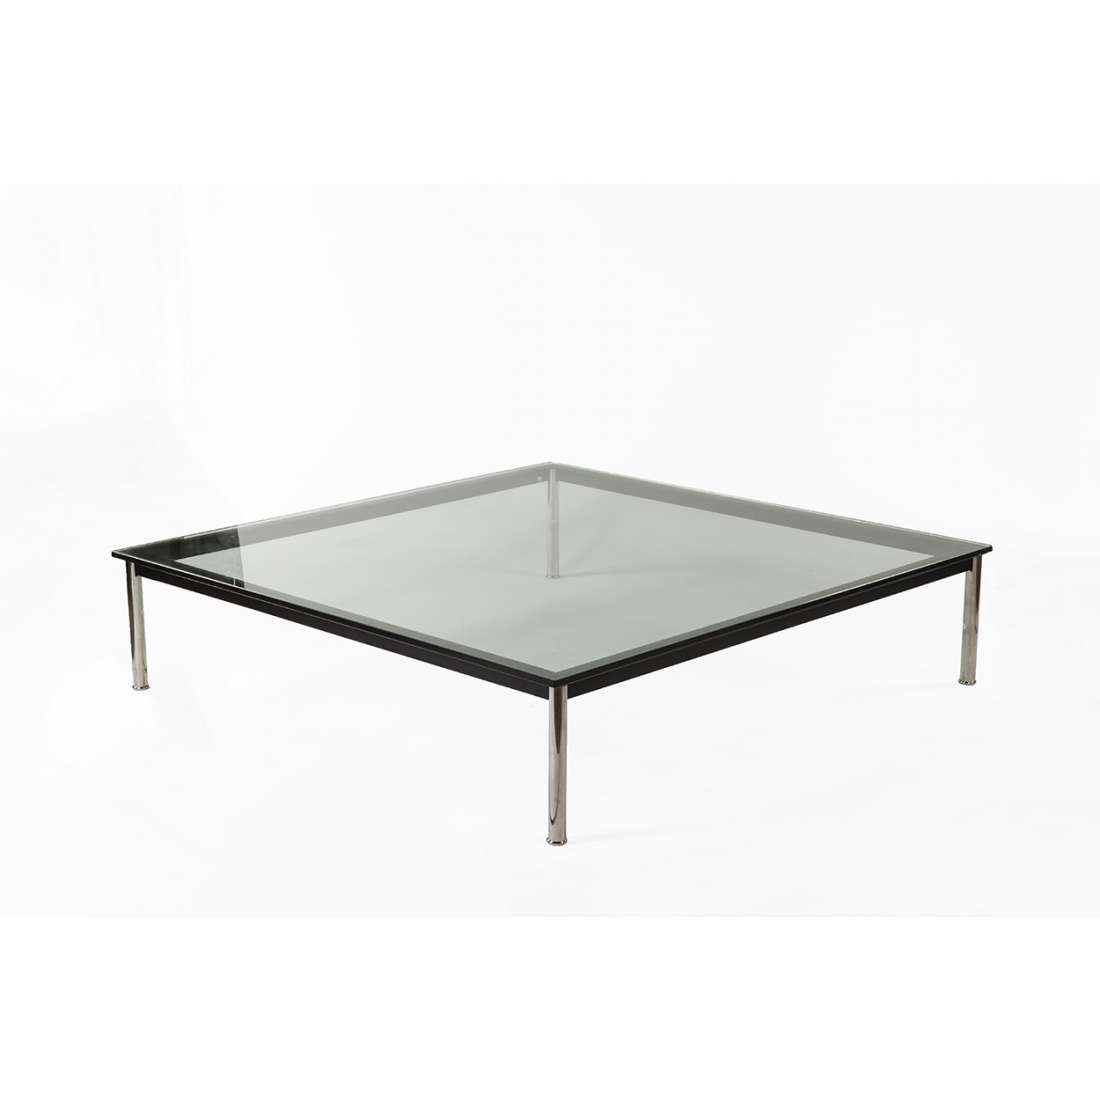 Trendy Low Rectangular Coffee Tables Inside Mid Century Modern Reproduction Lc10 Rectangle Low (View 15 of 20)